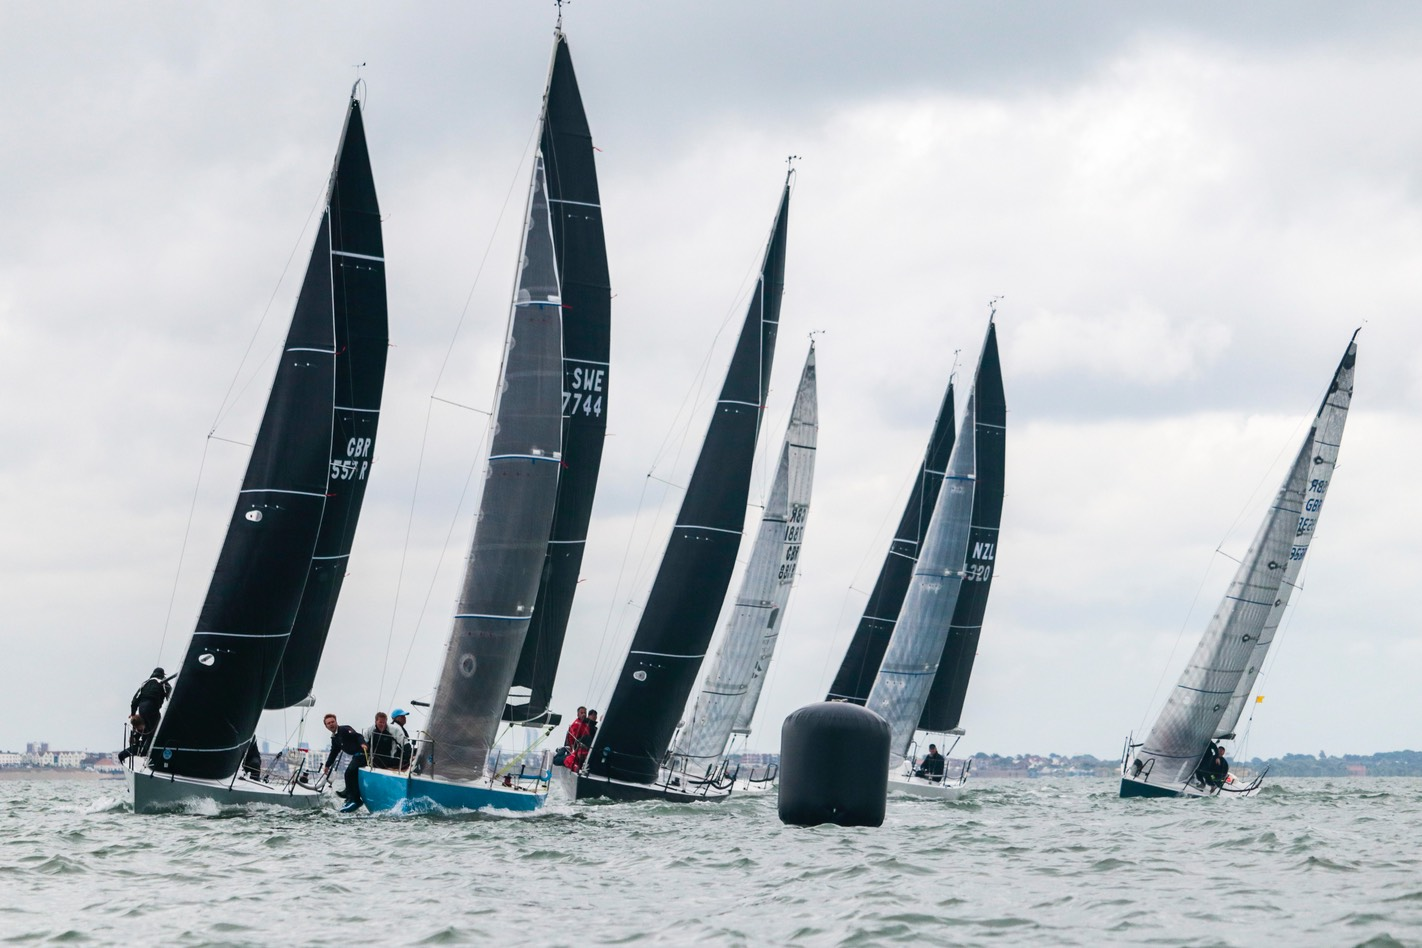 Quarter Ton Cup 2019. Photographs by Waterline Media